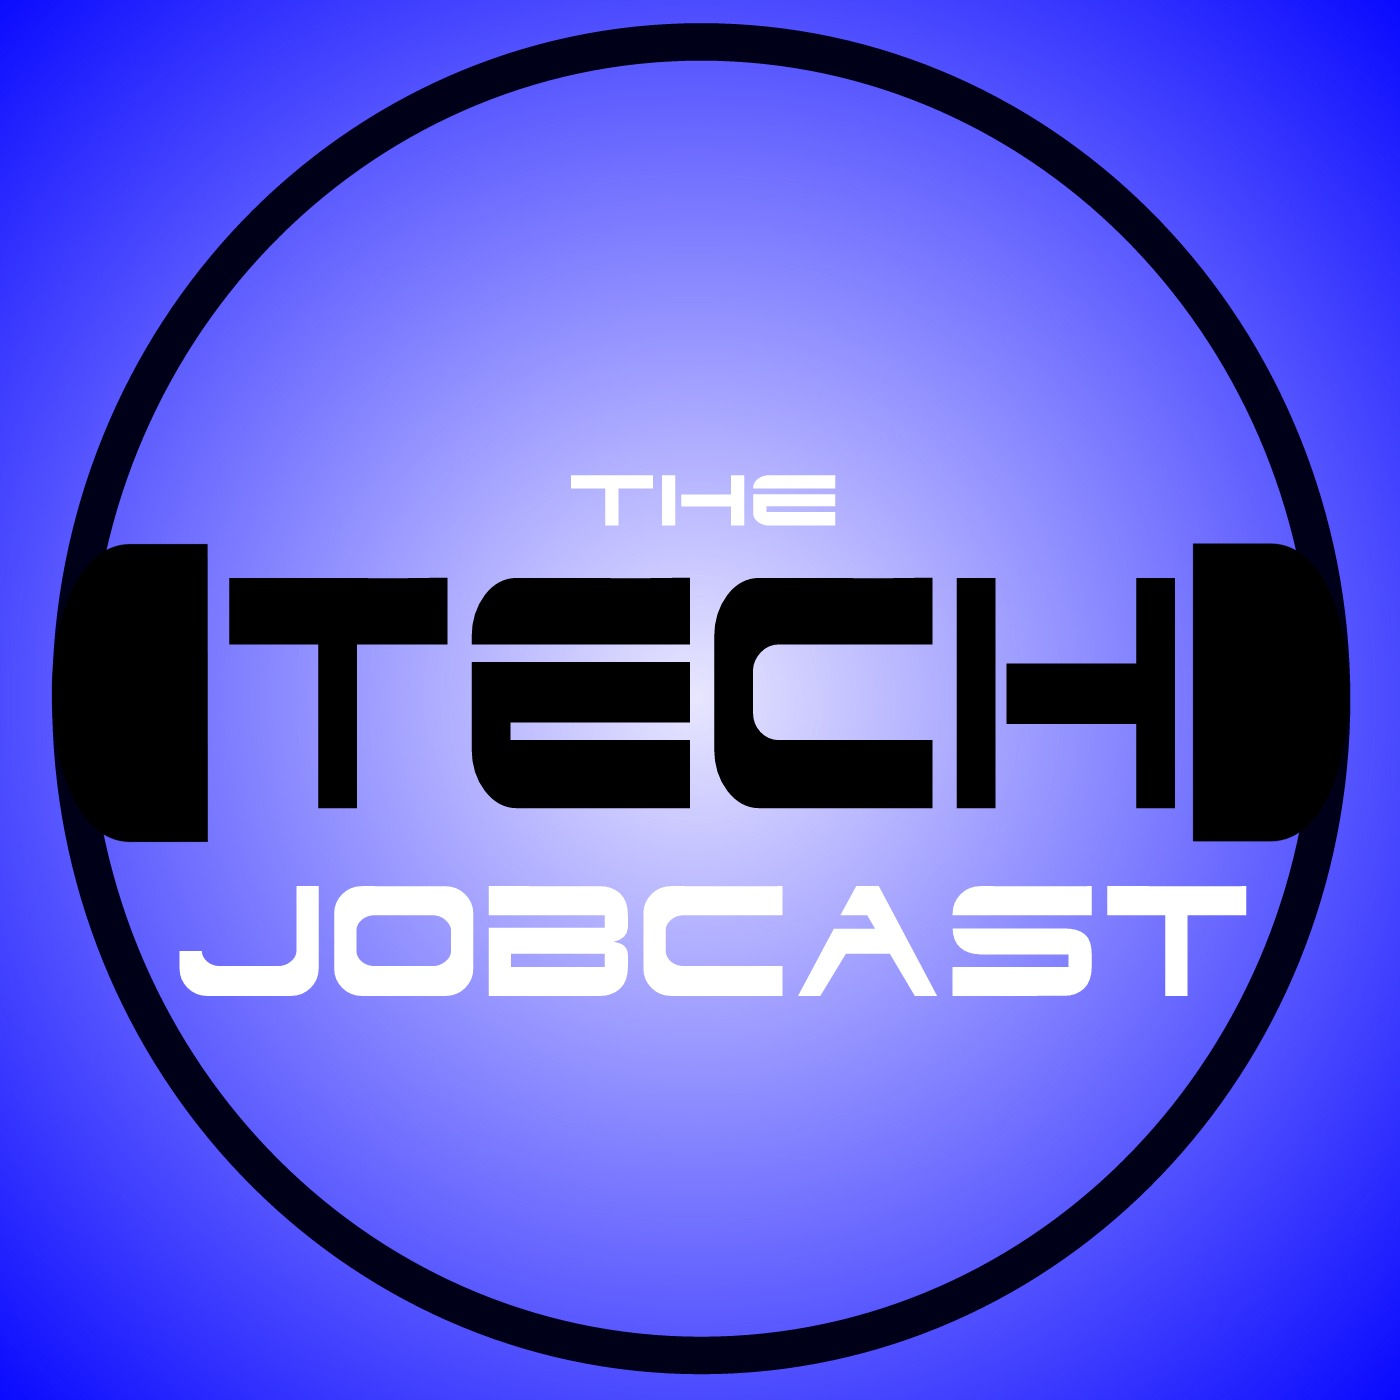 IT Job listings for the week of April 29, 2018